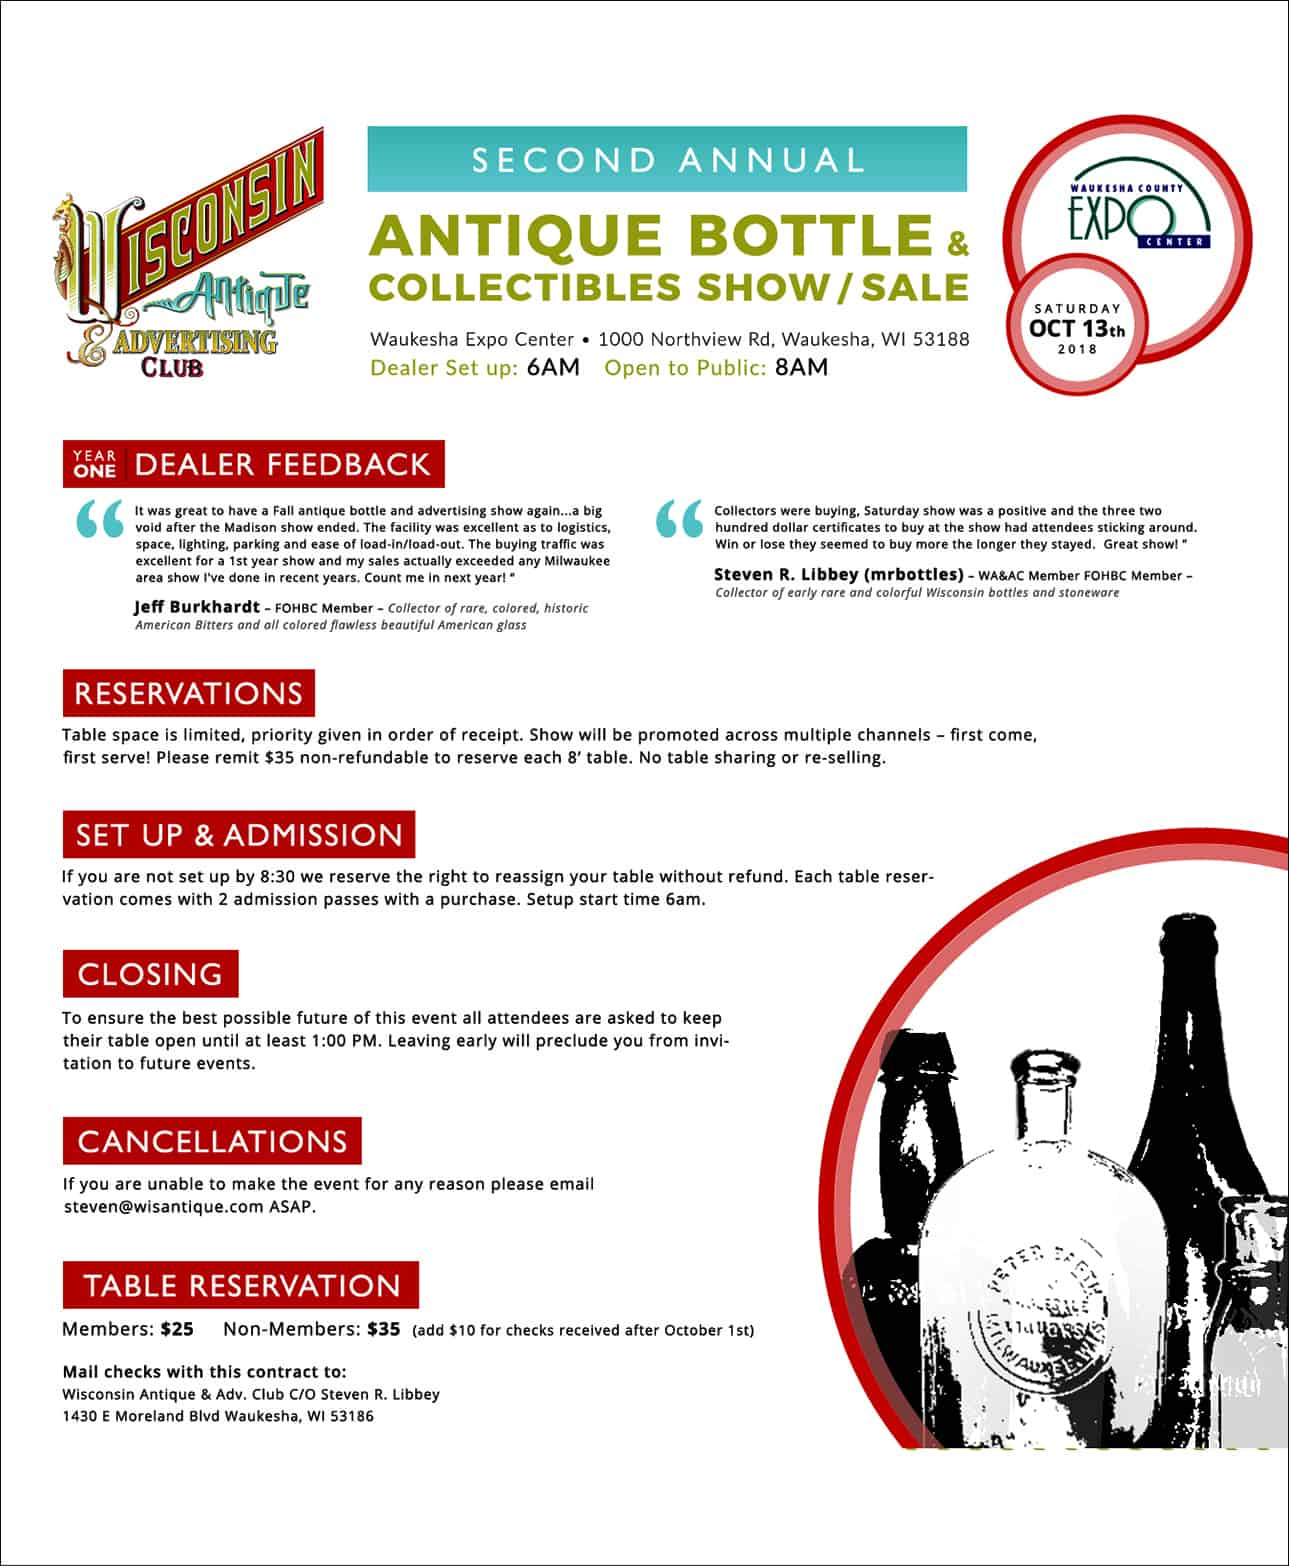 Second Annual Antique Bottle & Collectibles Show & Sale @ Waukesha Expo Center | Waukesha | Wisconsin | United States